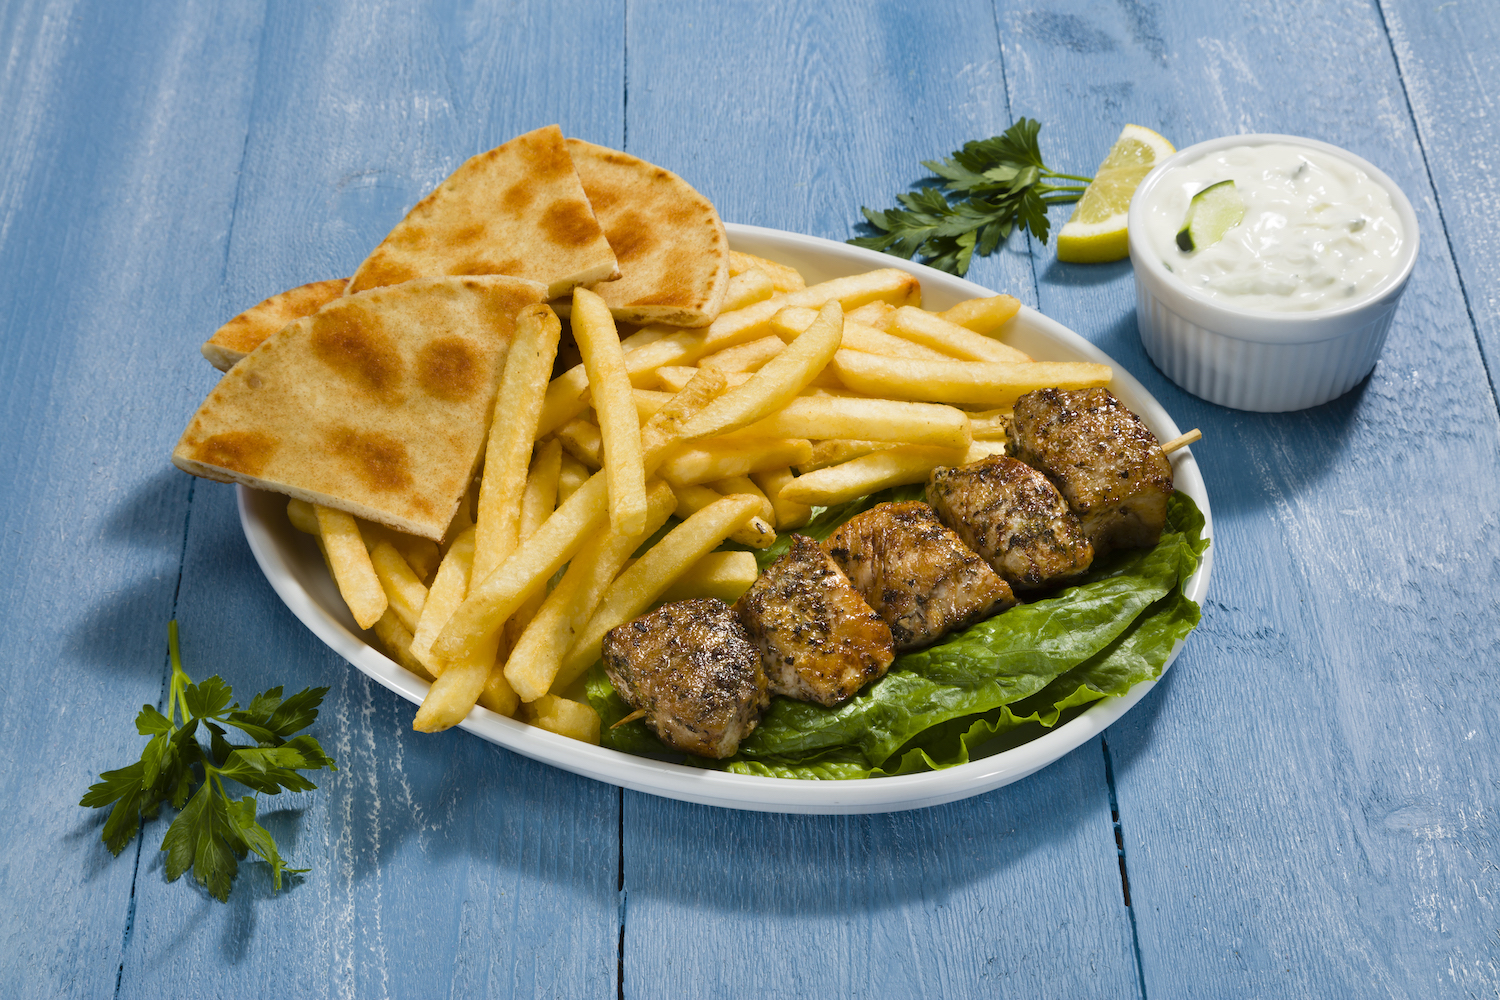 Souvlaki - pork fries plate_17-09-12_0002.jpg